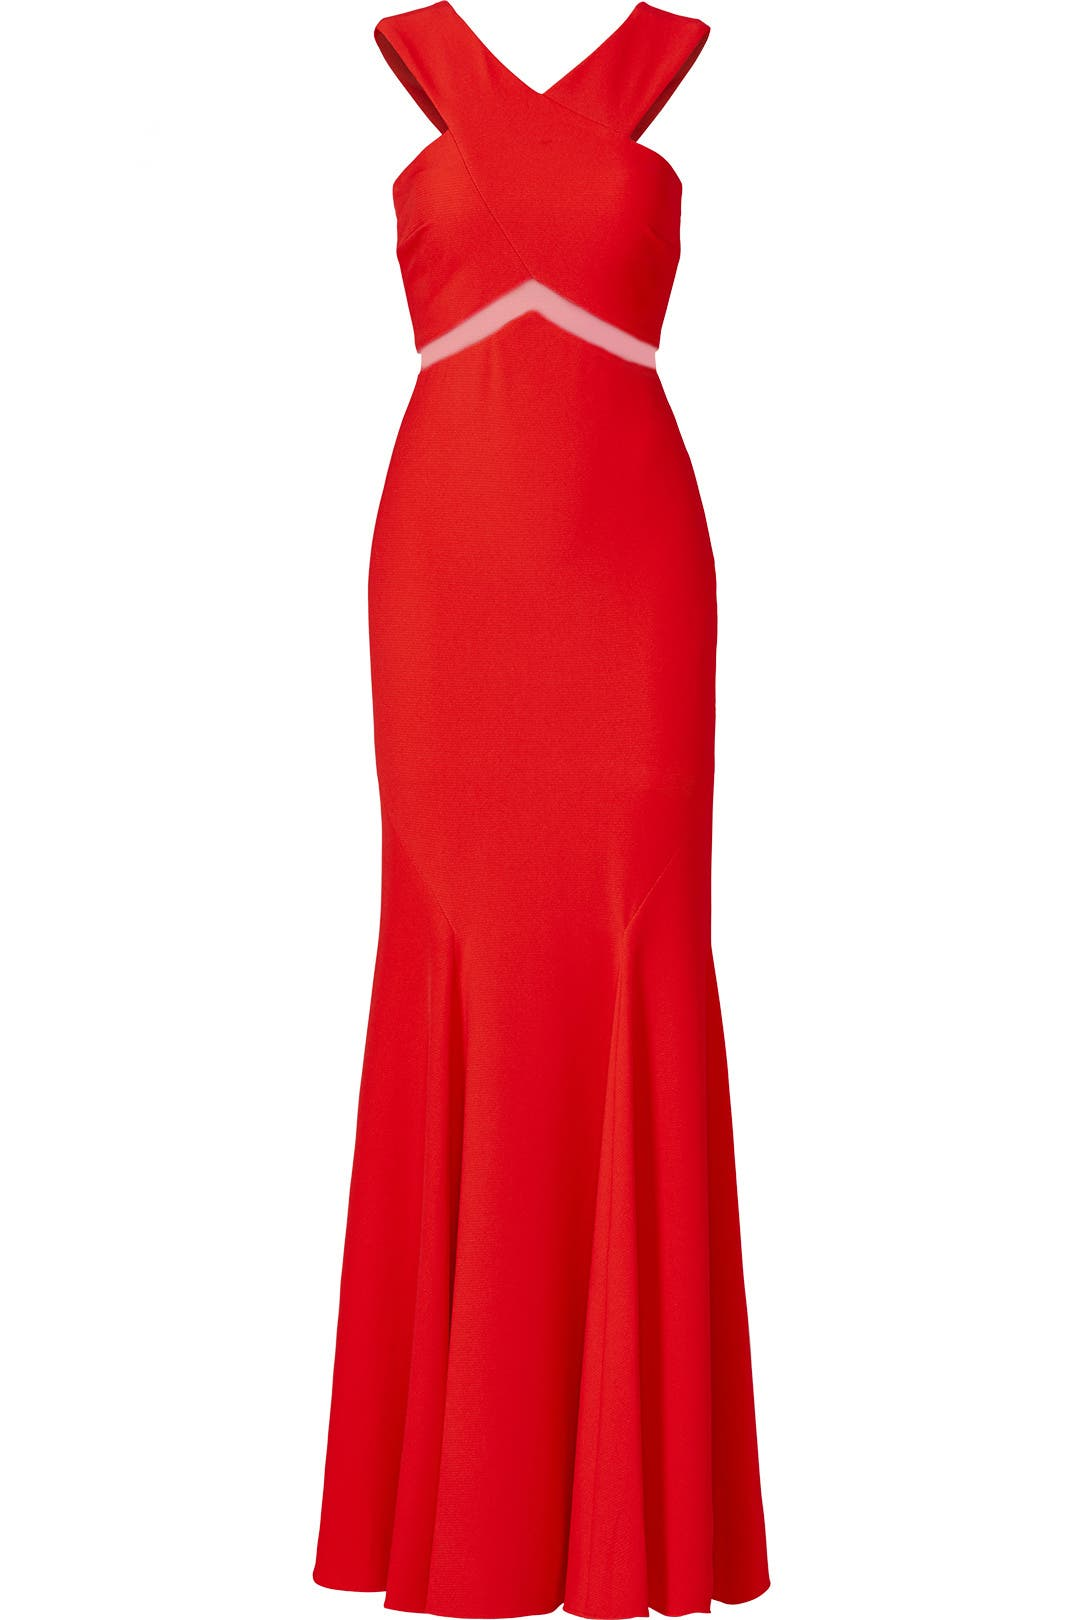 Red Chevron Cutout Gown by Mignon for $55 - $85 | Rent the Runway